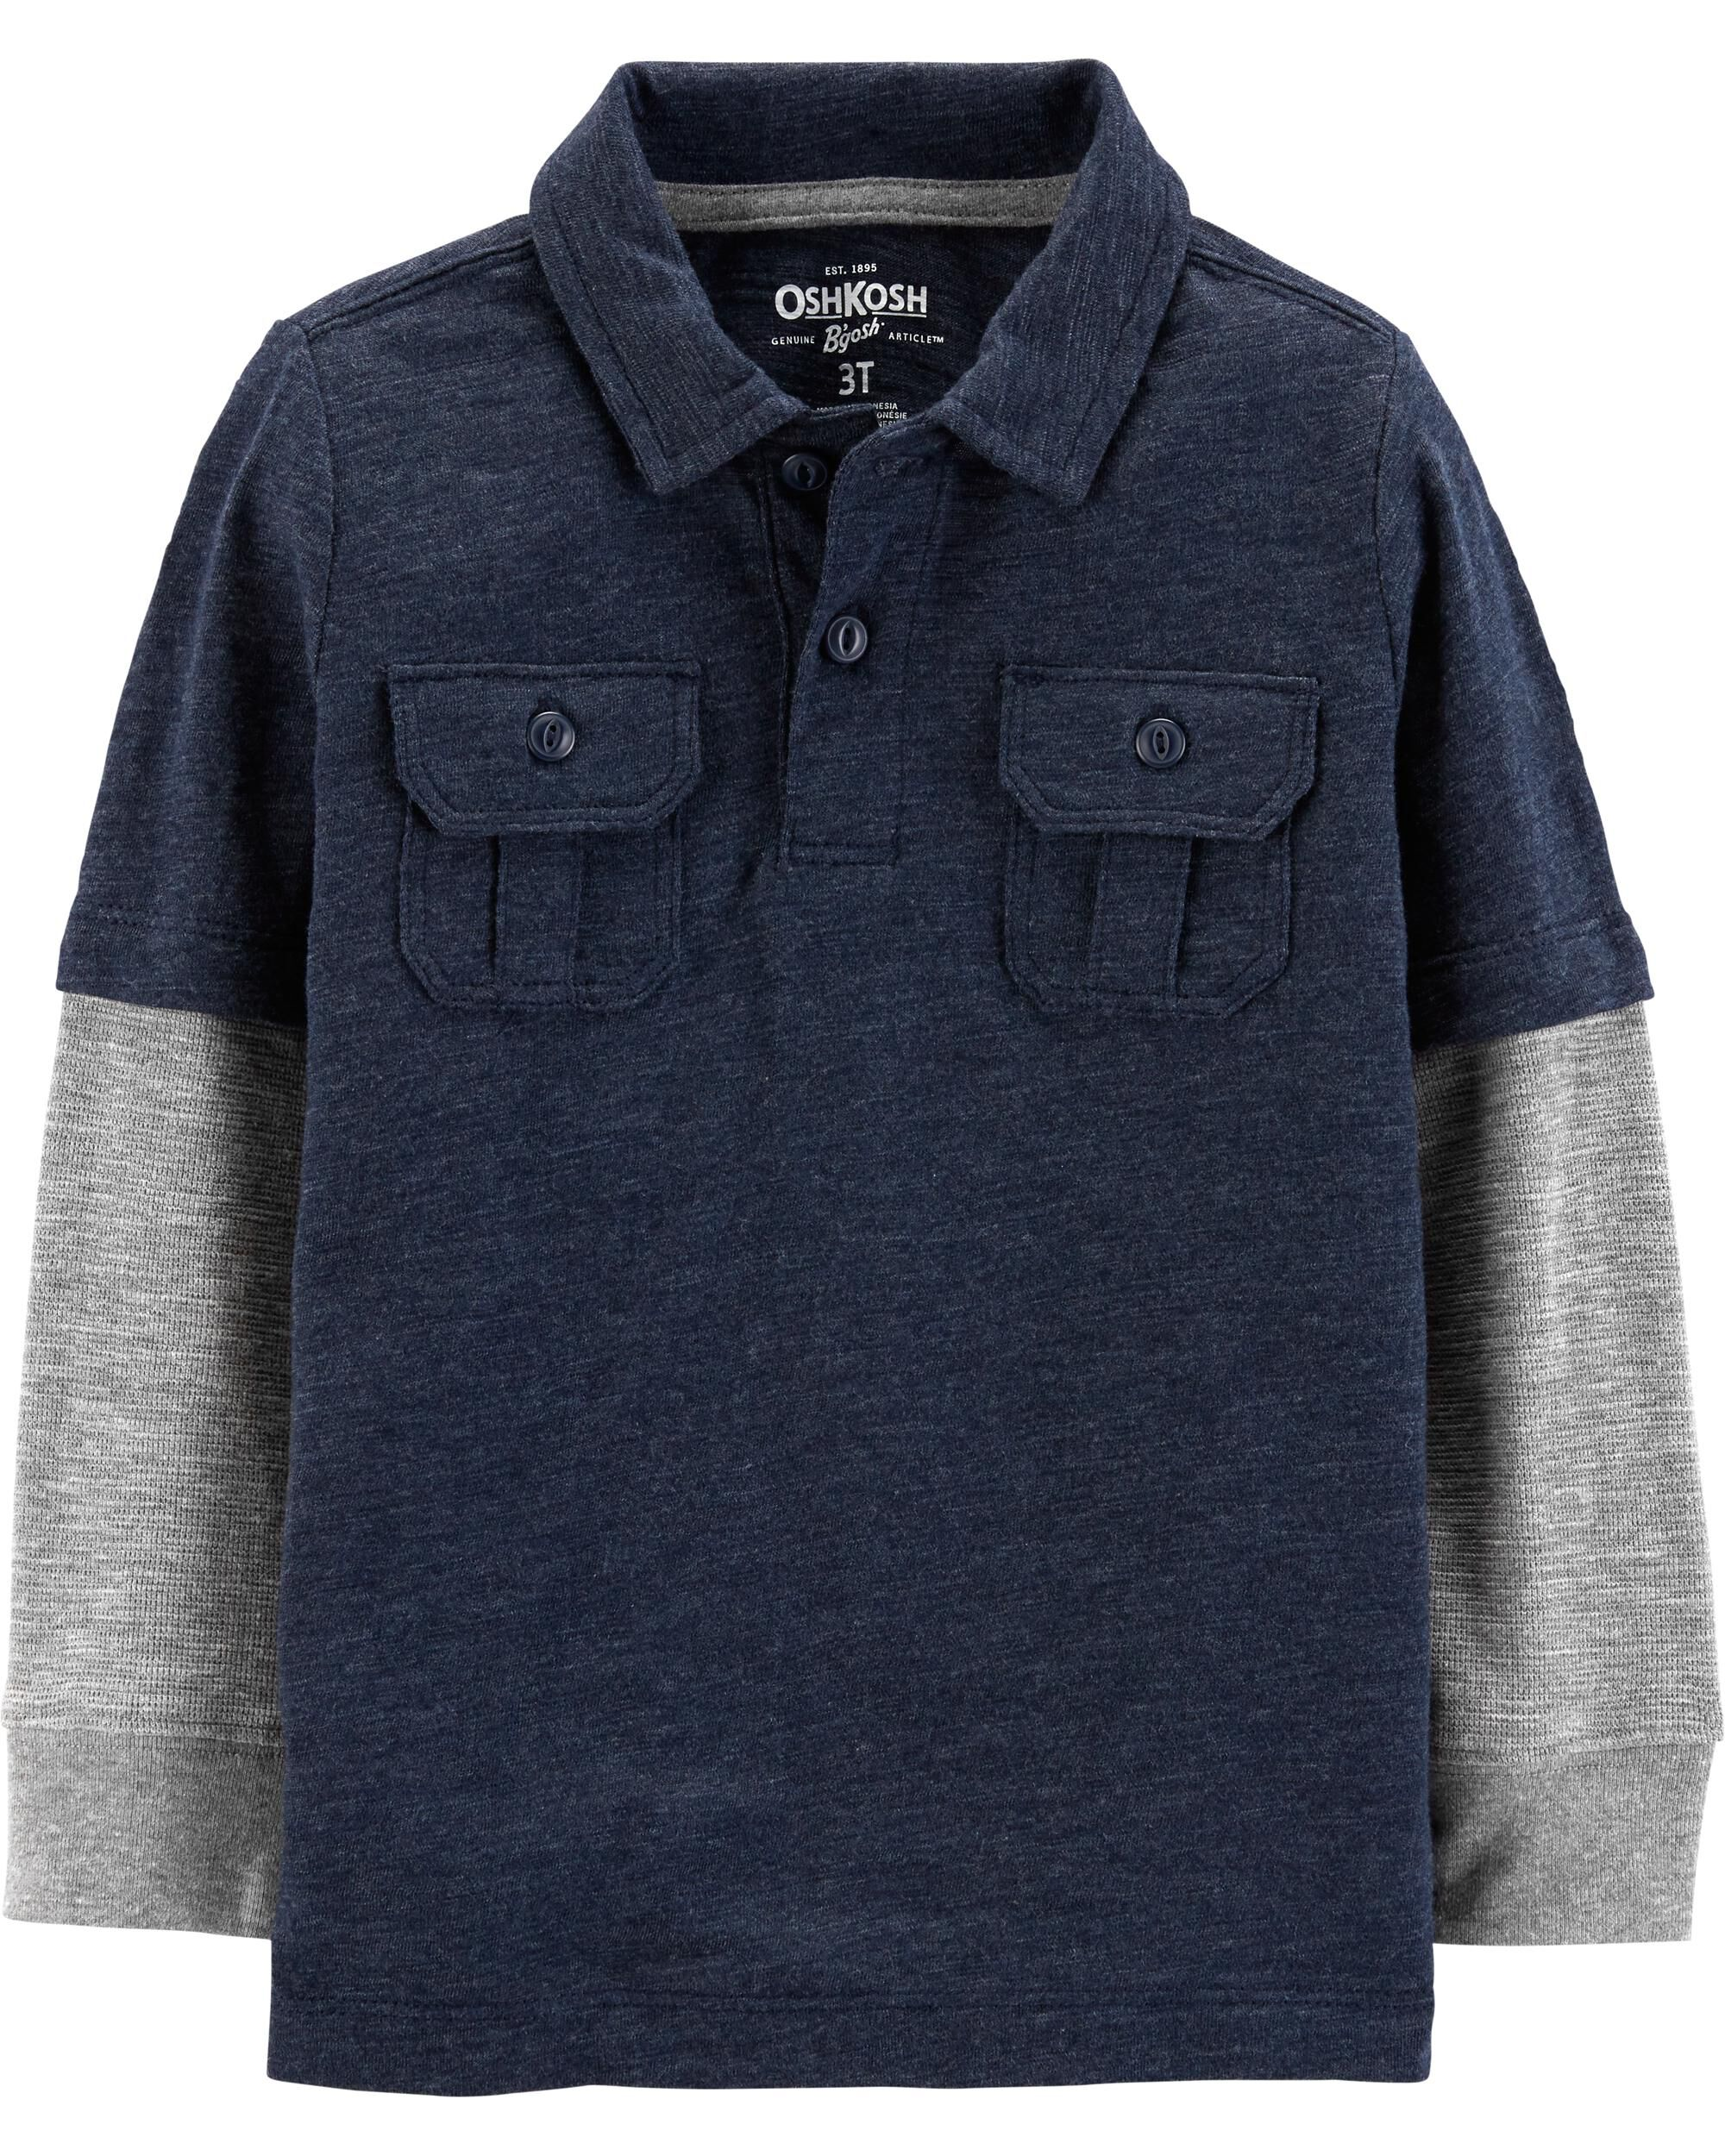 *Clearance*  Layered Look Polo